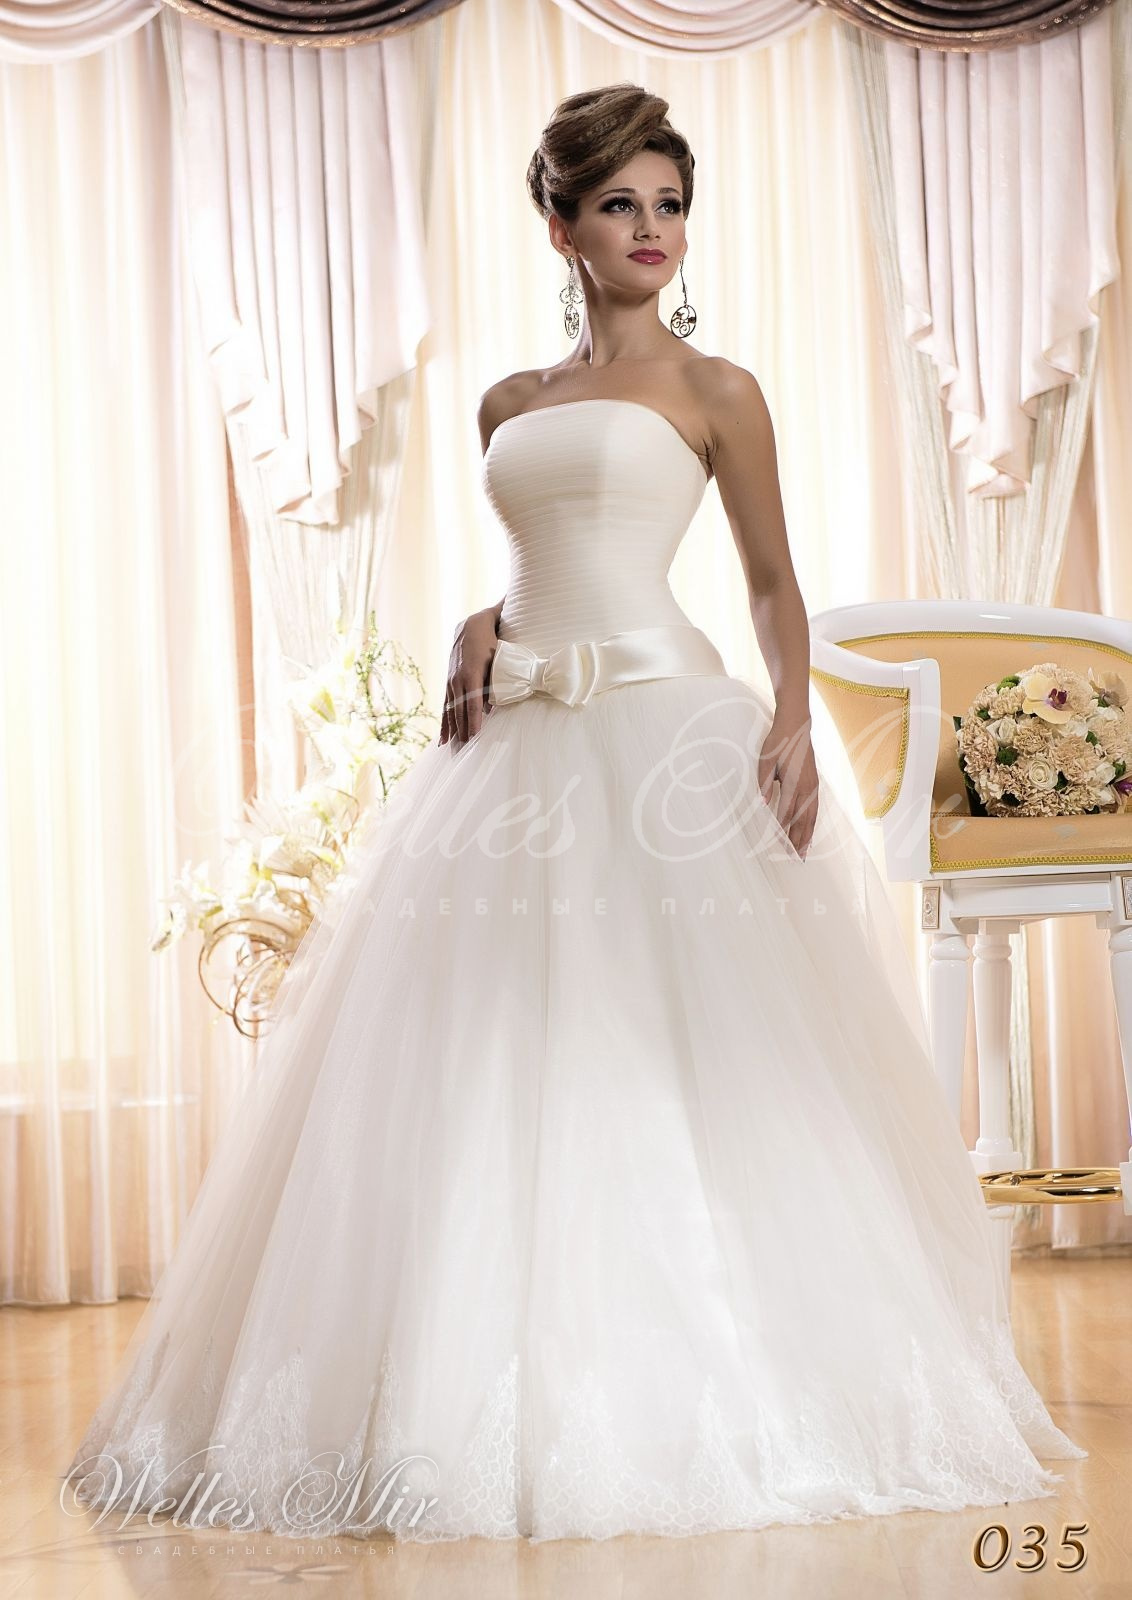 Wedding dresses 035